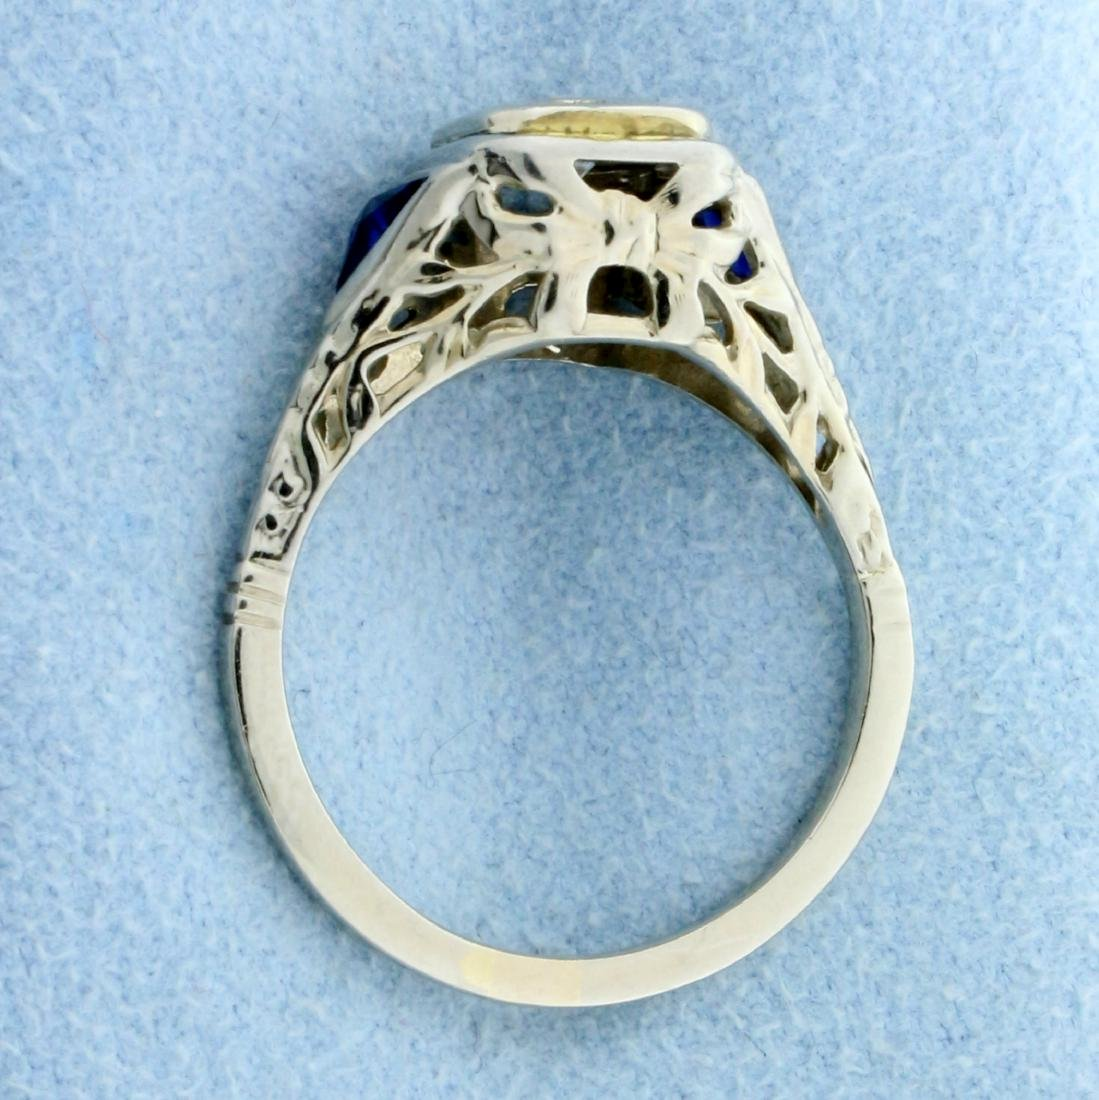 Vintage  Diamond and Sapphire Ring in 14K White Gold - 3